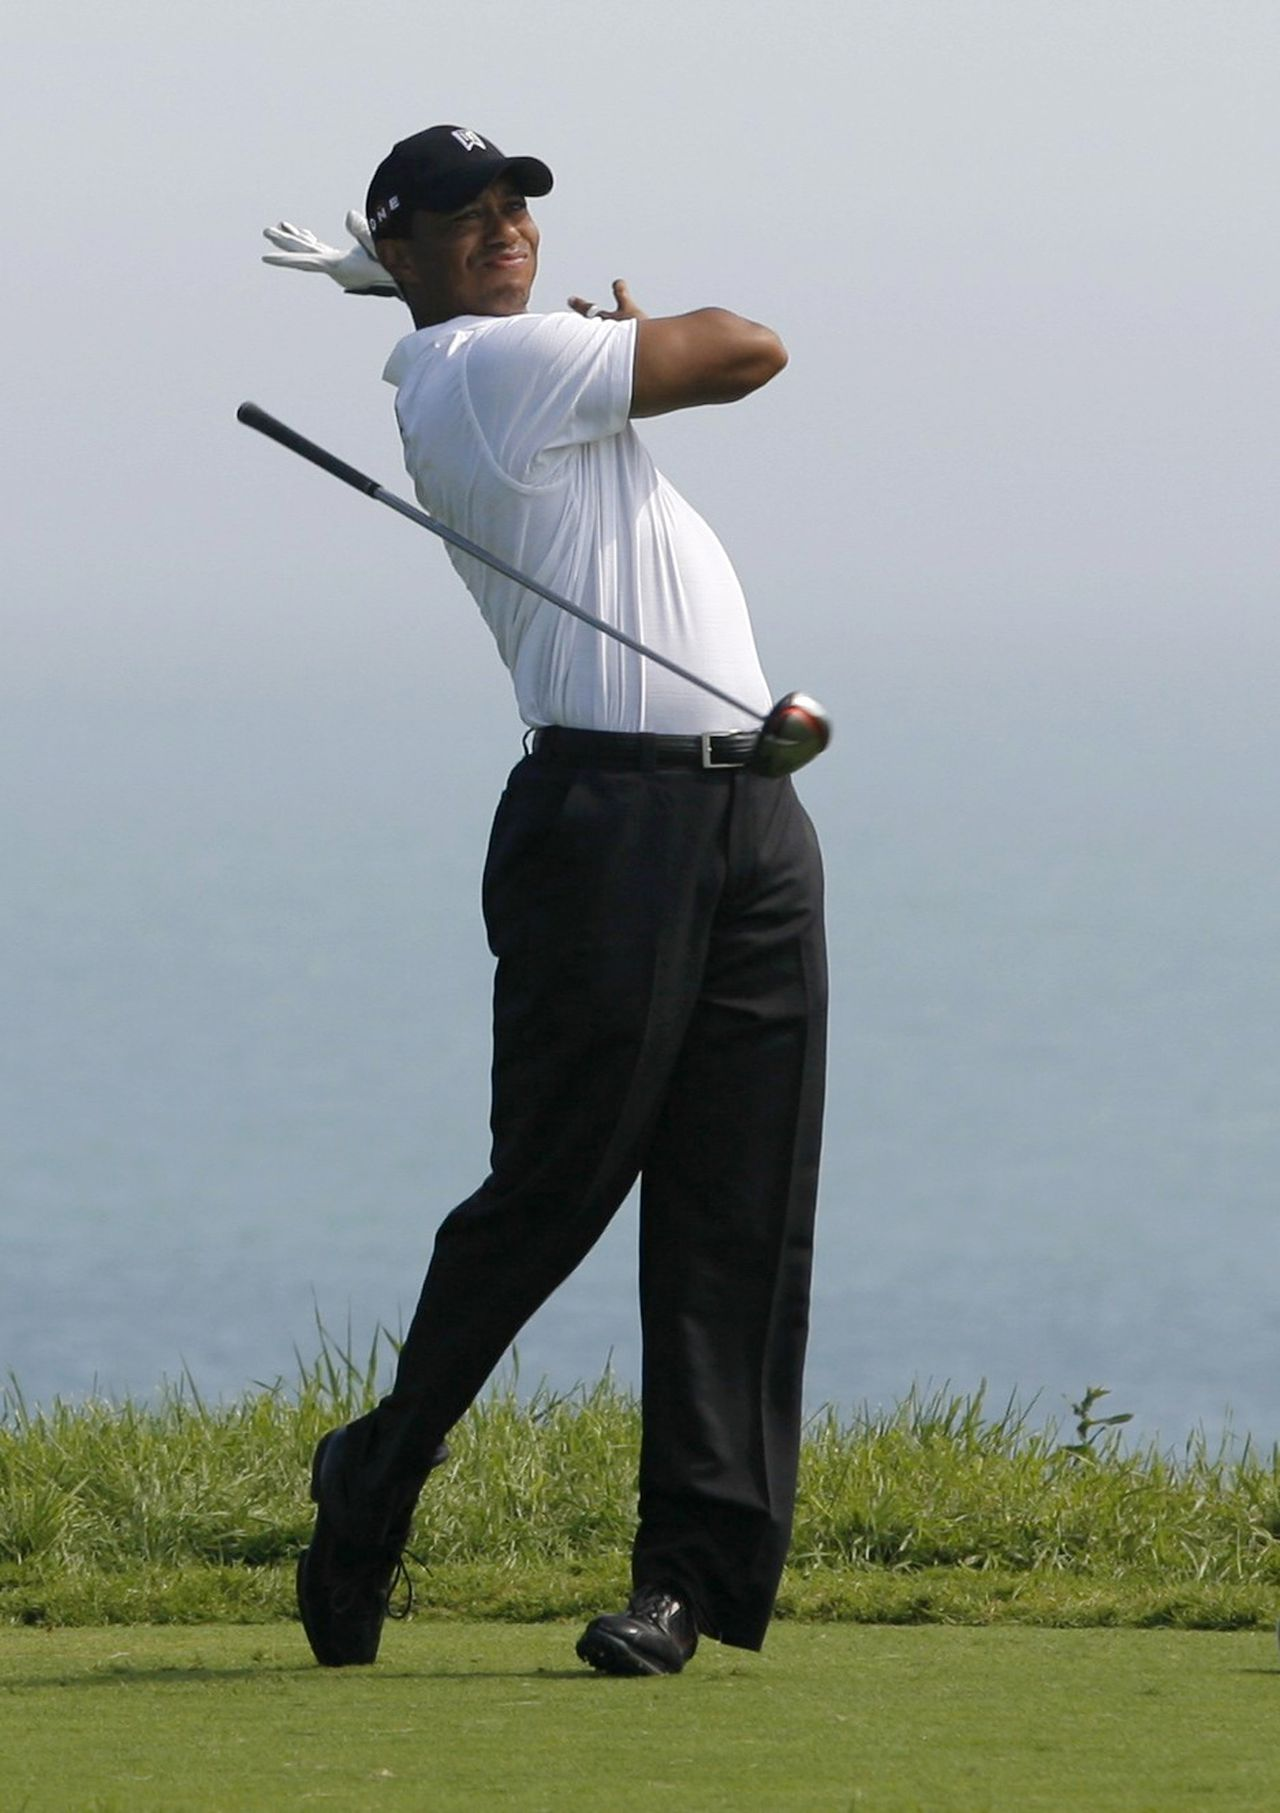 Tiger Woods of the U.S. lets go of his club after hitting on the fifth tee during the first round of the 92nd PGA Golf Championship at Whistling Straits in Kohler, Wisconsin, August 12, 2010. REUTERS/Matt Sullivan (UNITED STATES - Tags: SPORT GOLF IMAGES OF THE DAY)